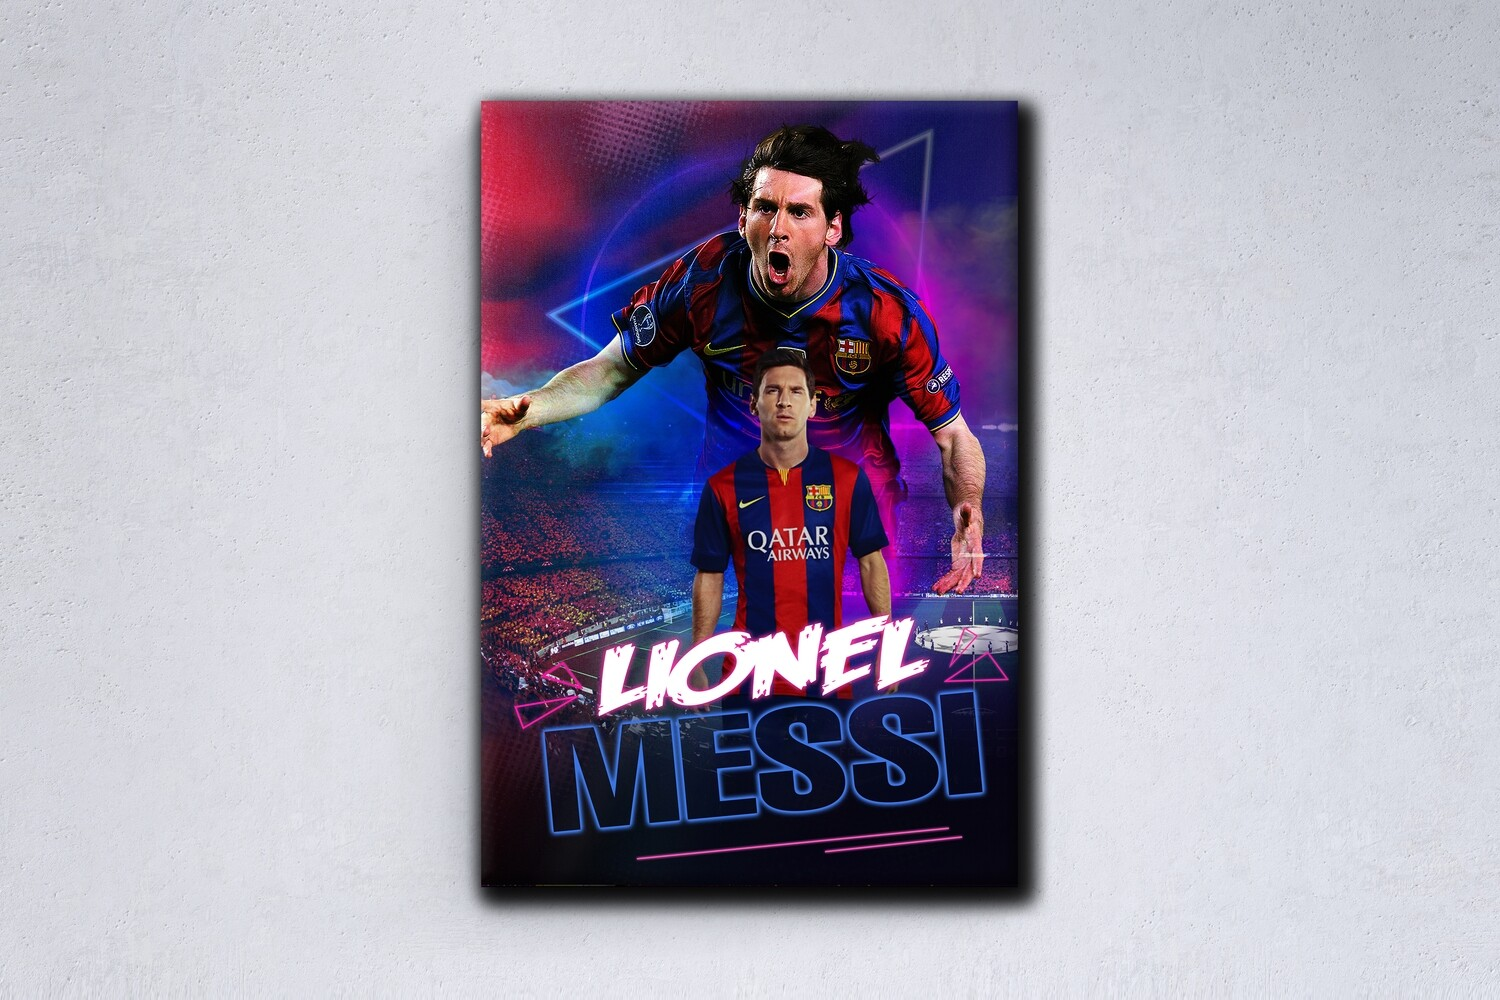 Lionel Messi Painting -Sports Wallart - FC Barcelona Lionel Messi - Picture Printed on Frameless Acrylic Glass- Ready To Hang